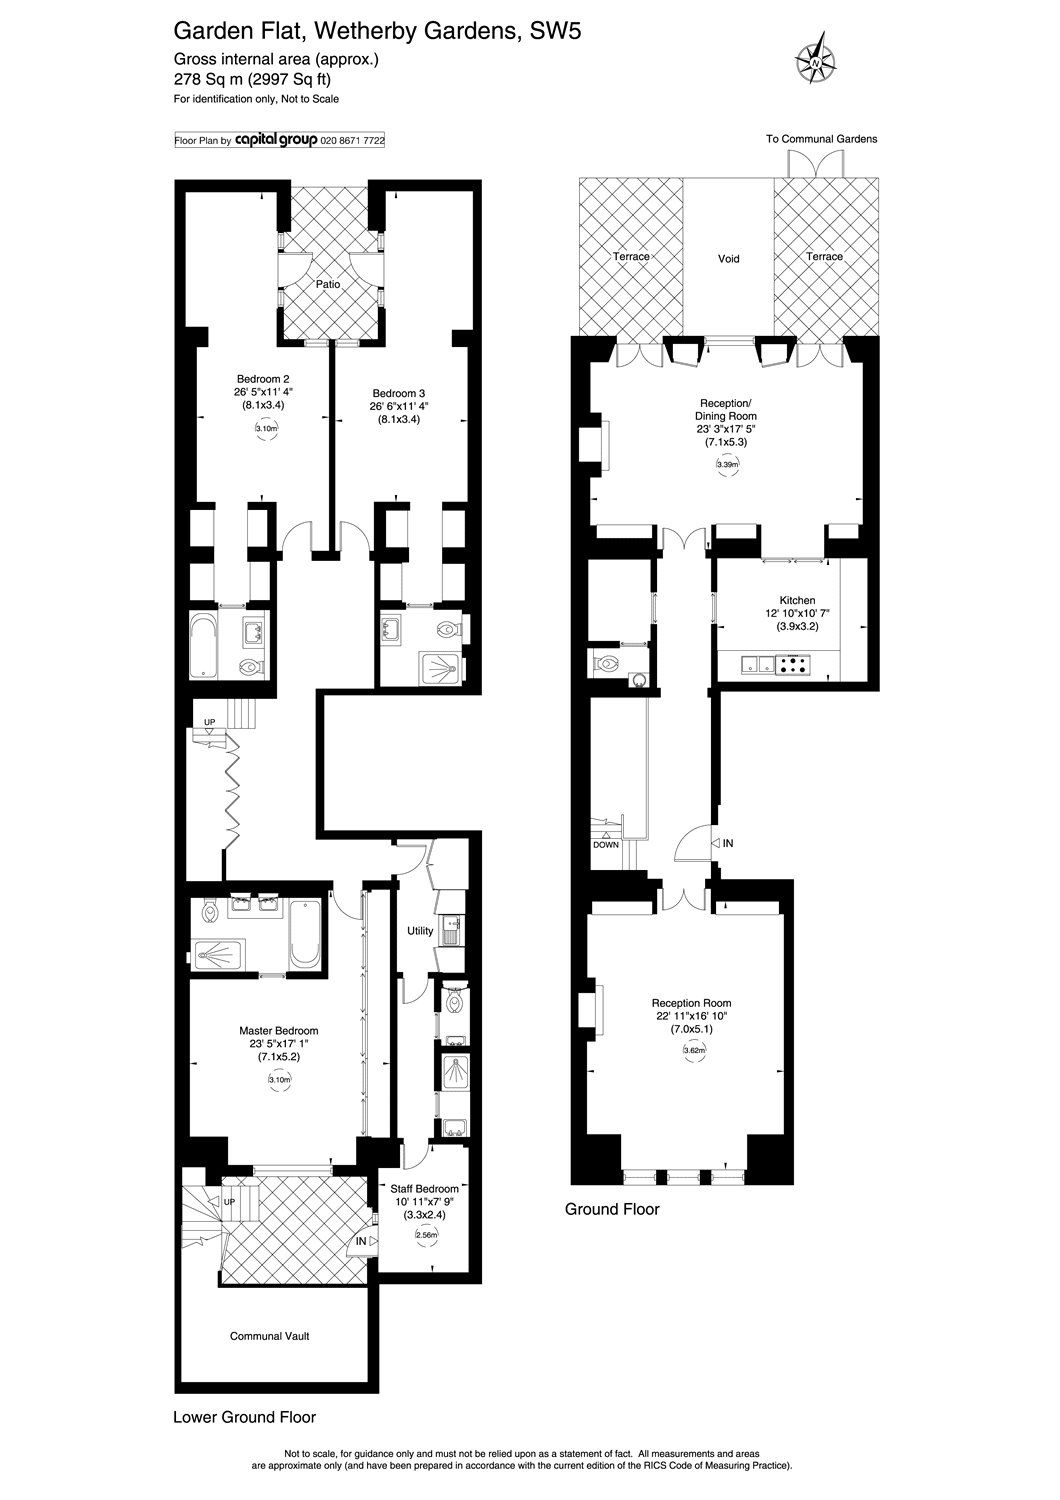 Flat for sale - 4 bedrooms in Wetherby Gardens, South ... London Kensington Homes Floor Plans on shop floor plans, london home rentals, london apartments floor plans, london flat floor plans, london home architecture, london home design, london home construction,